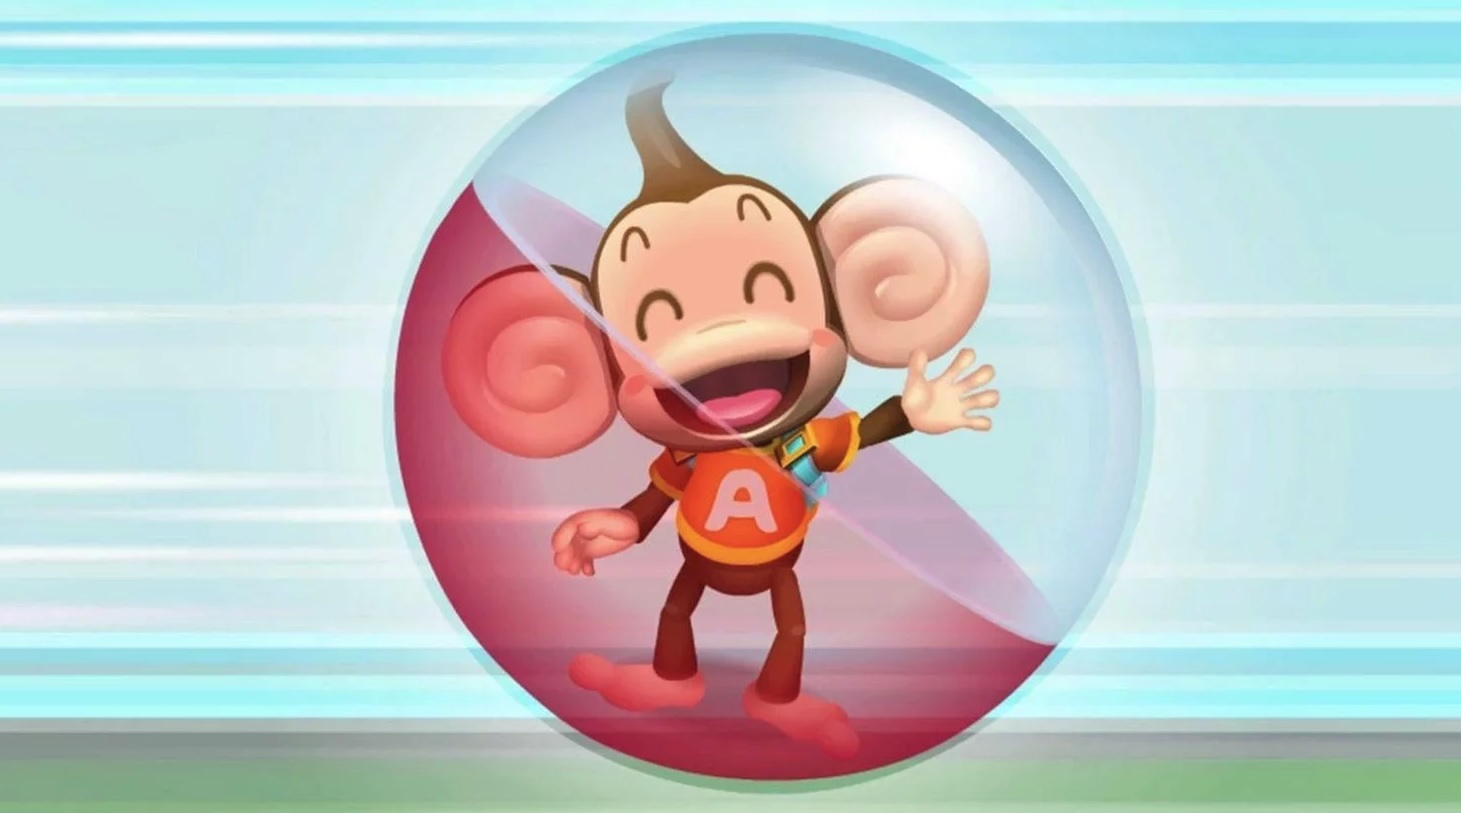 Super Monkey Ball creator is still surprised the series took off